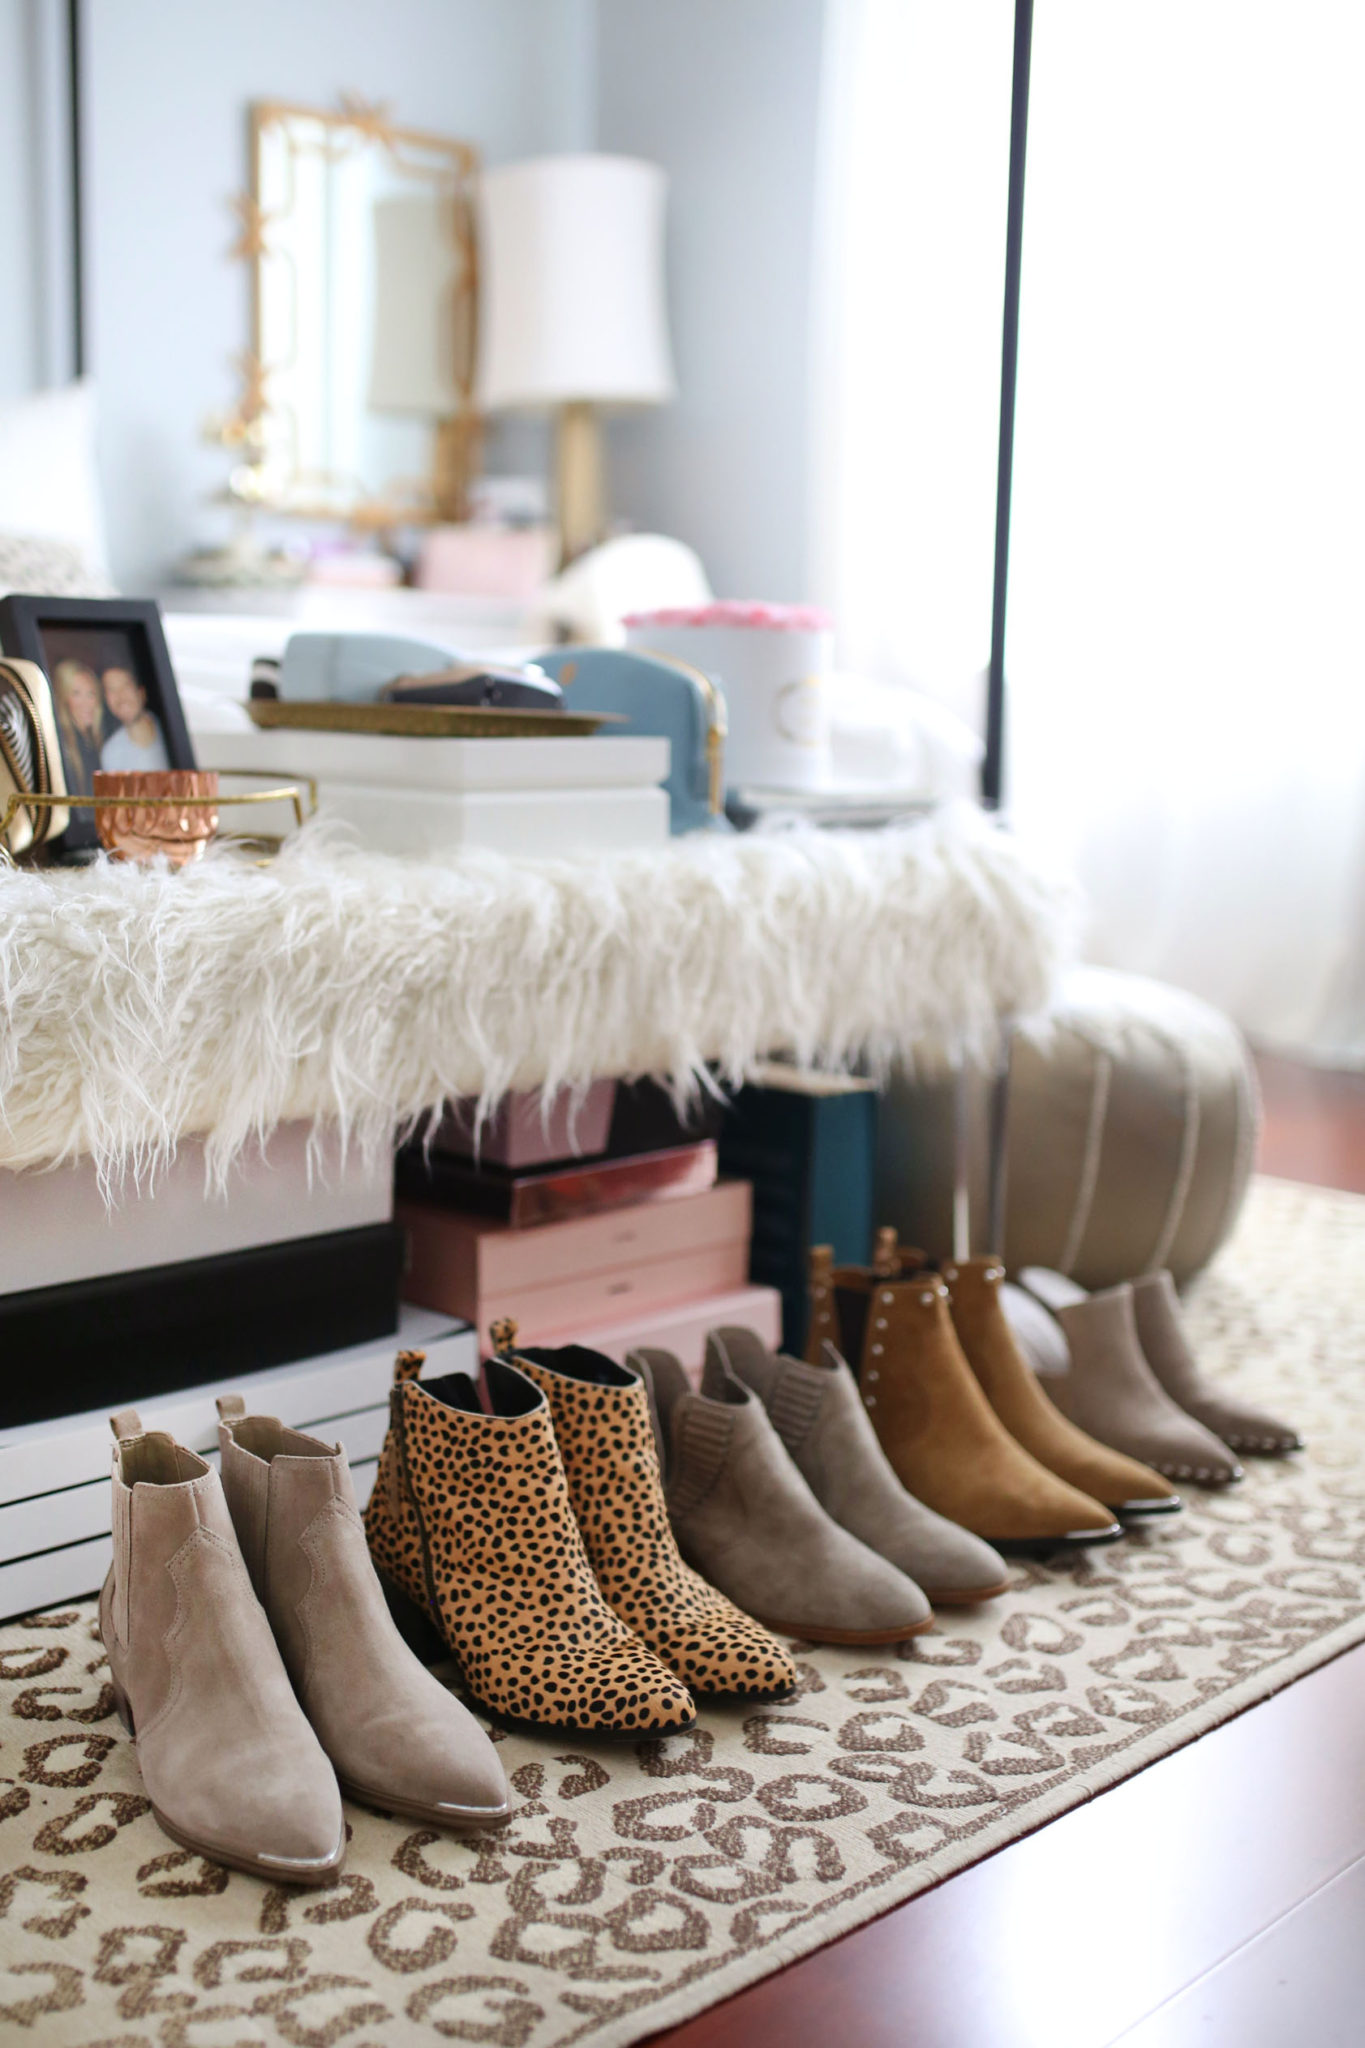 The Fall Boot Guide | Fall's Best Boot Styles